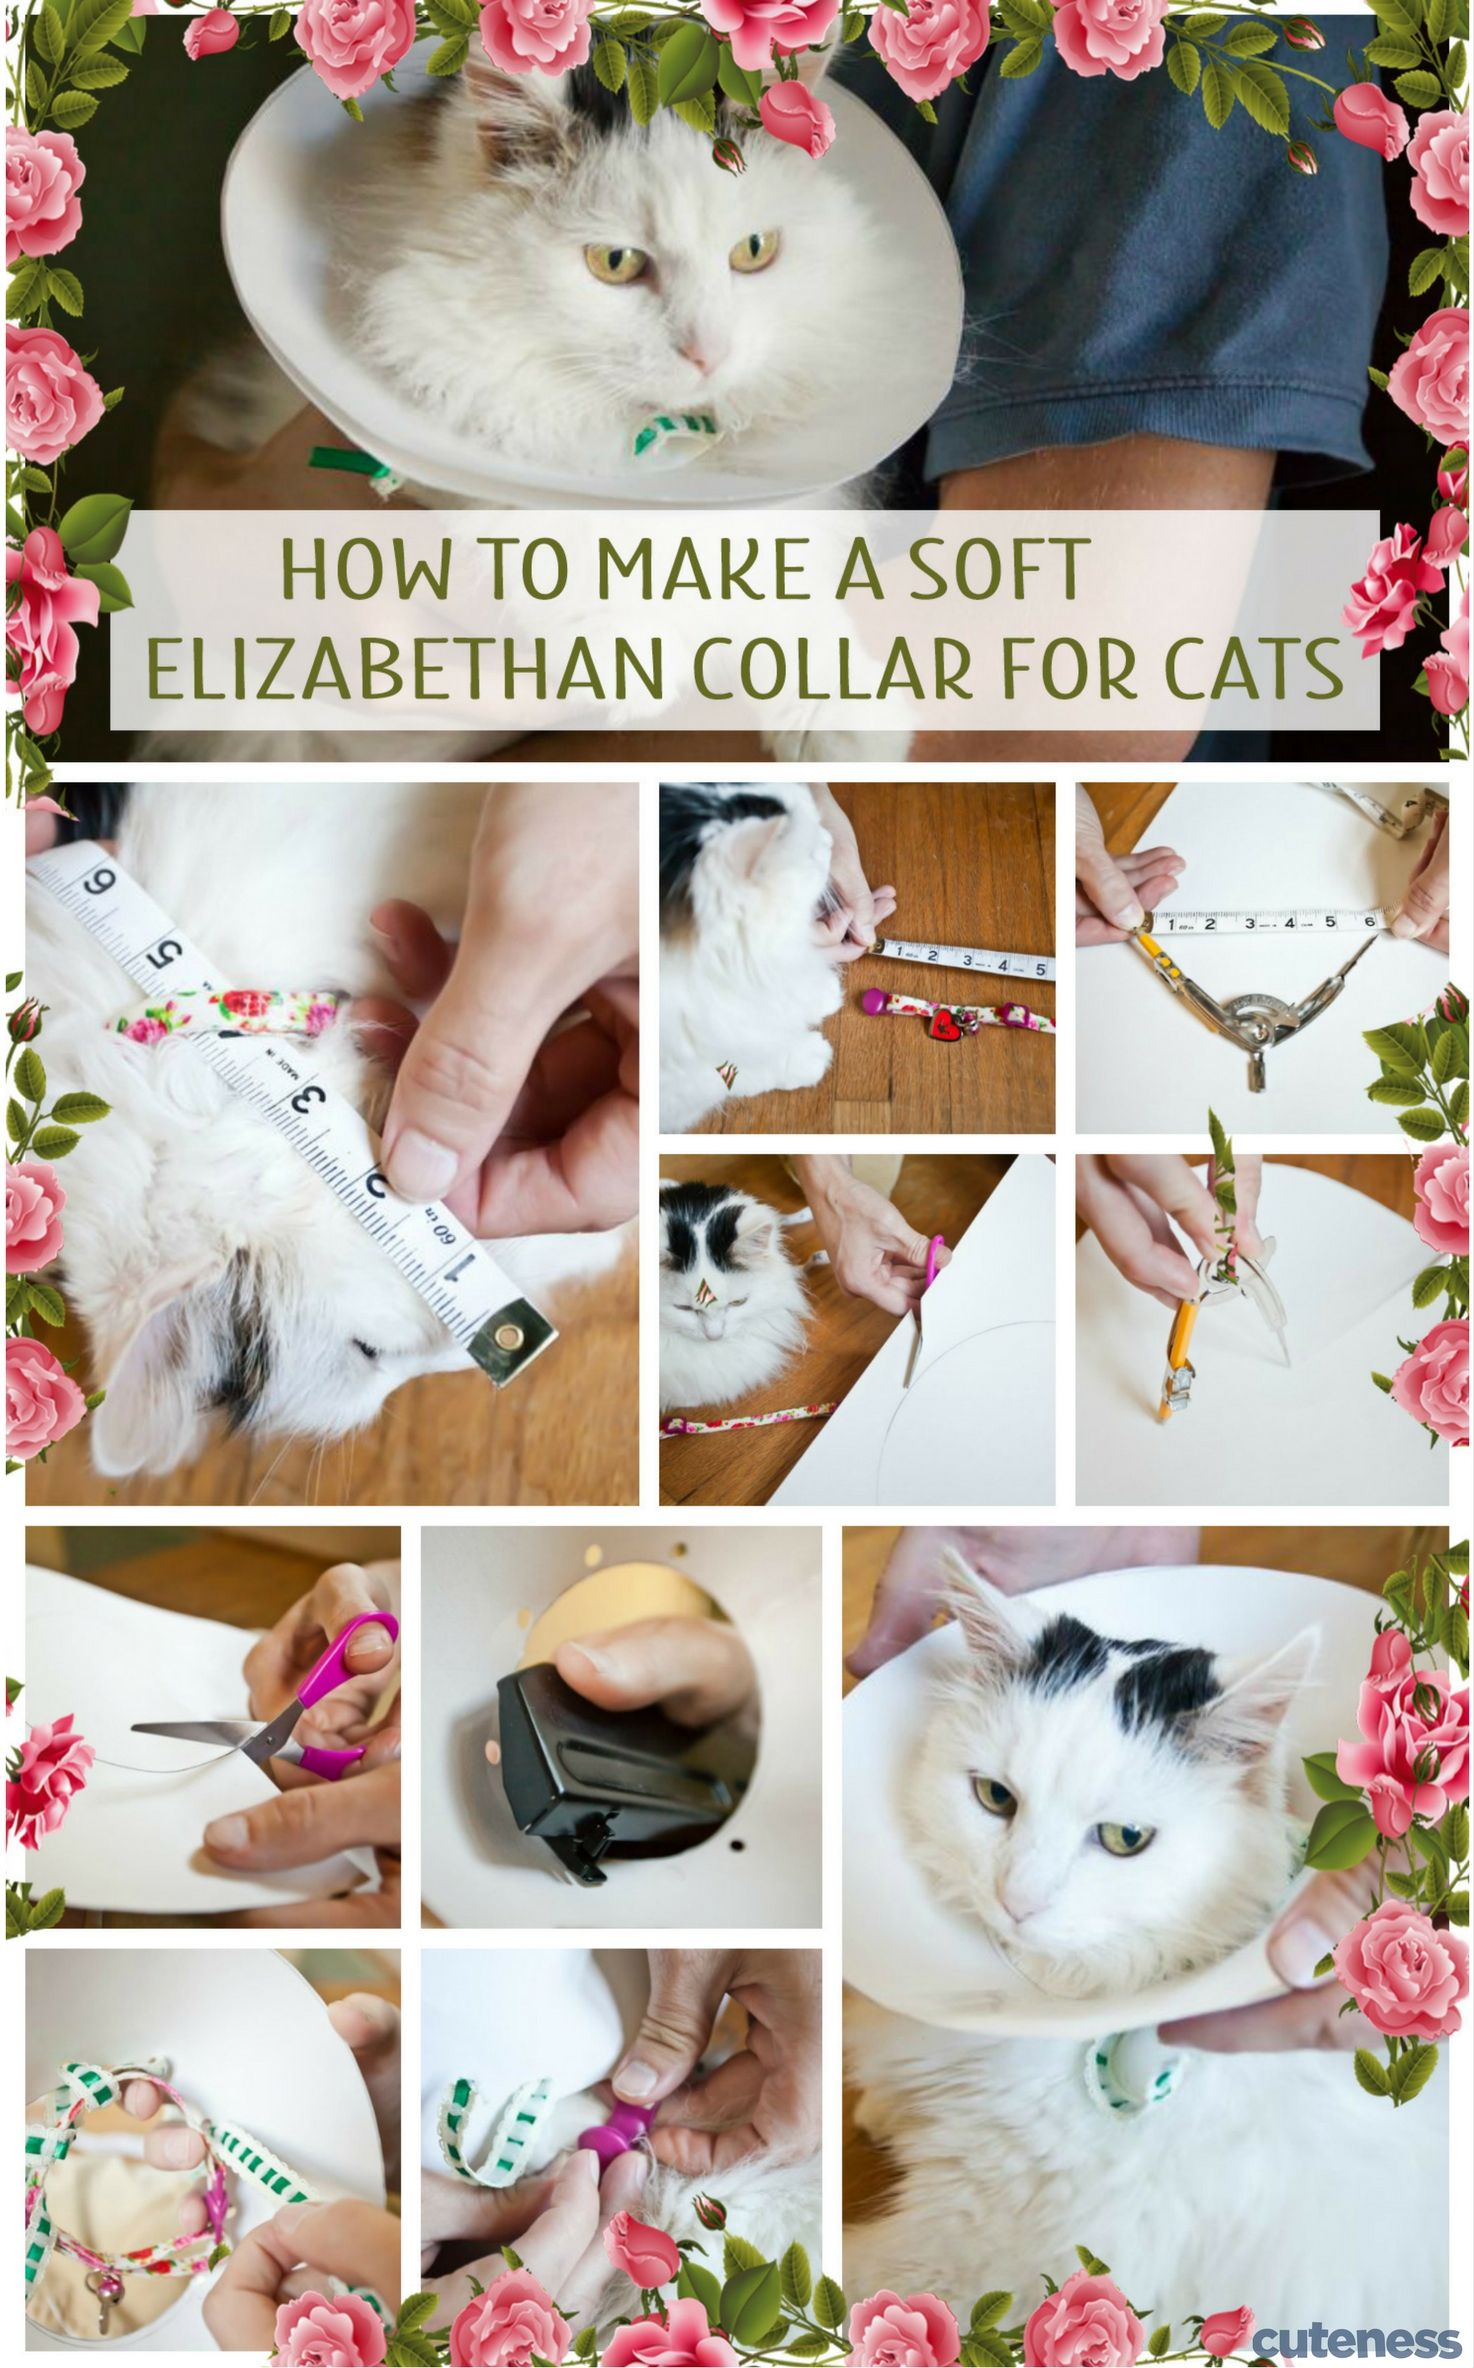 How To Make A Soft Elizabethan Collar For Cats Cat Collars Diy Elizabethan Collar Dog Cone